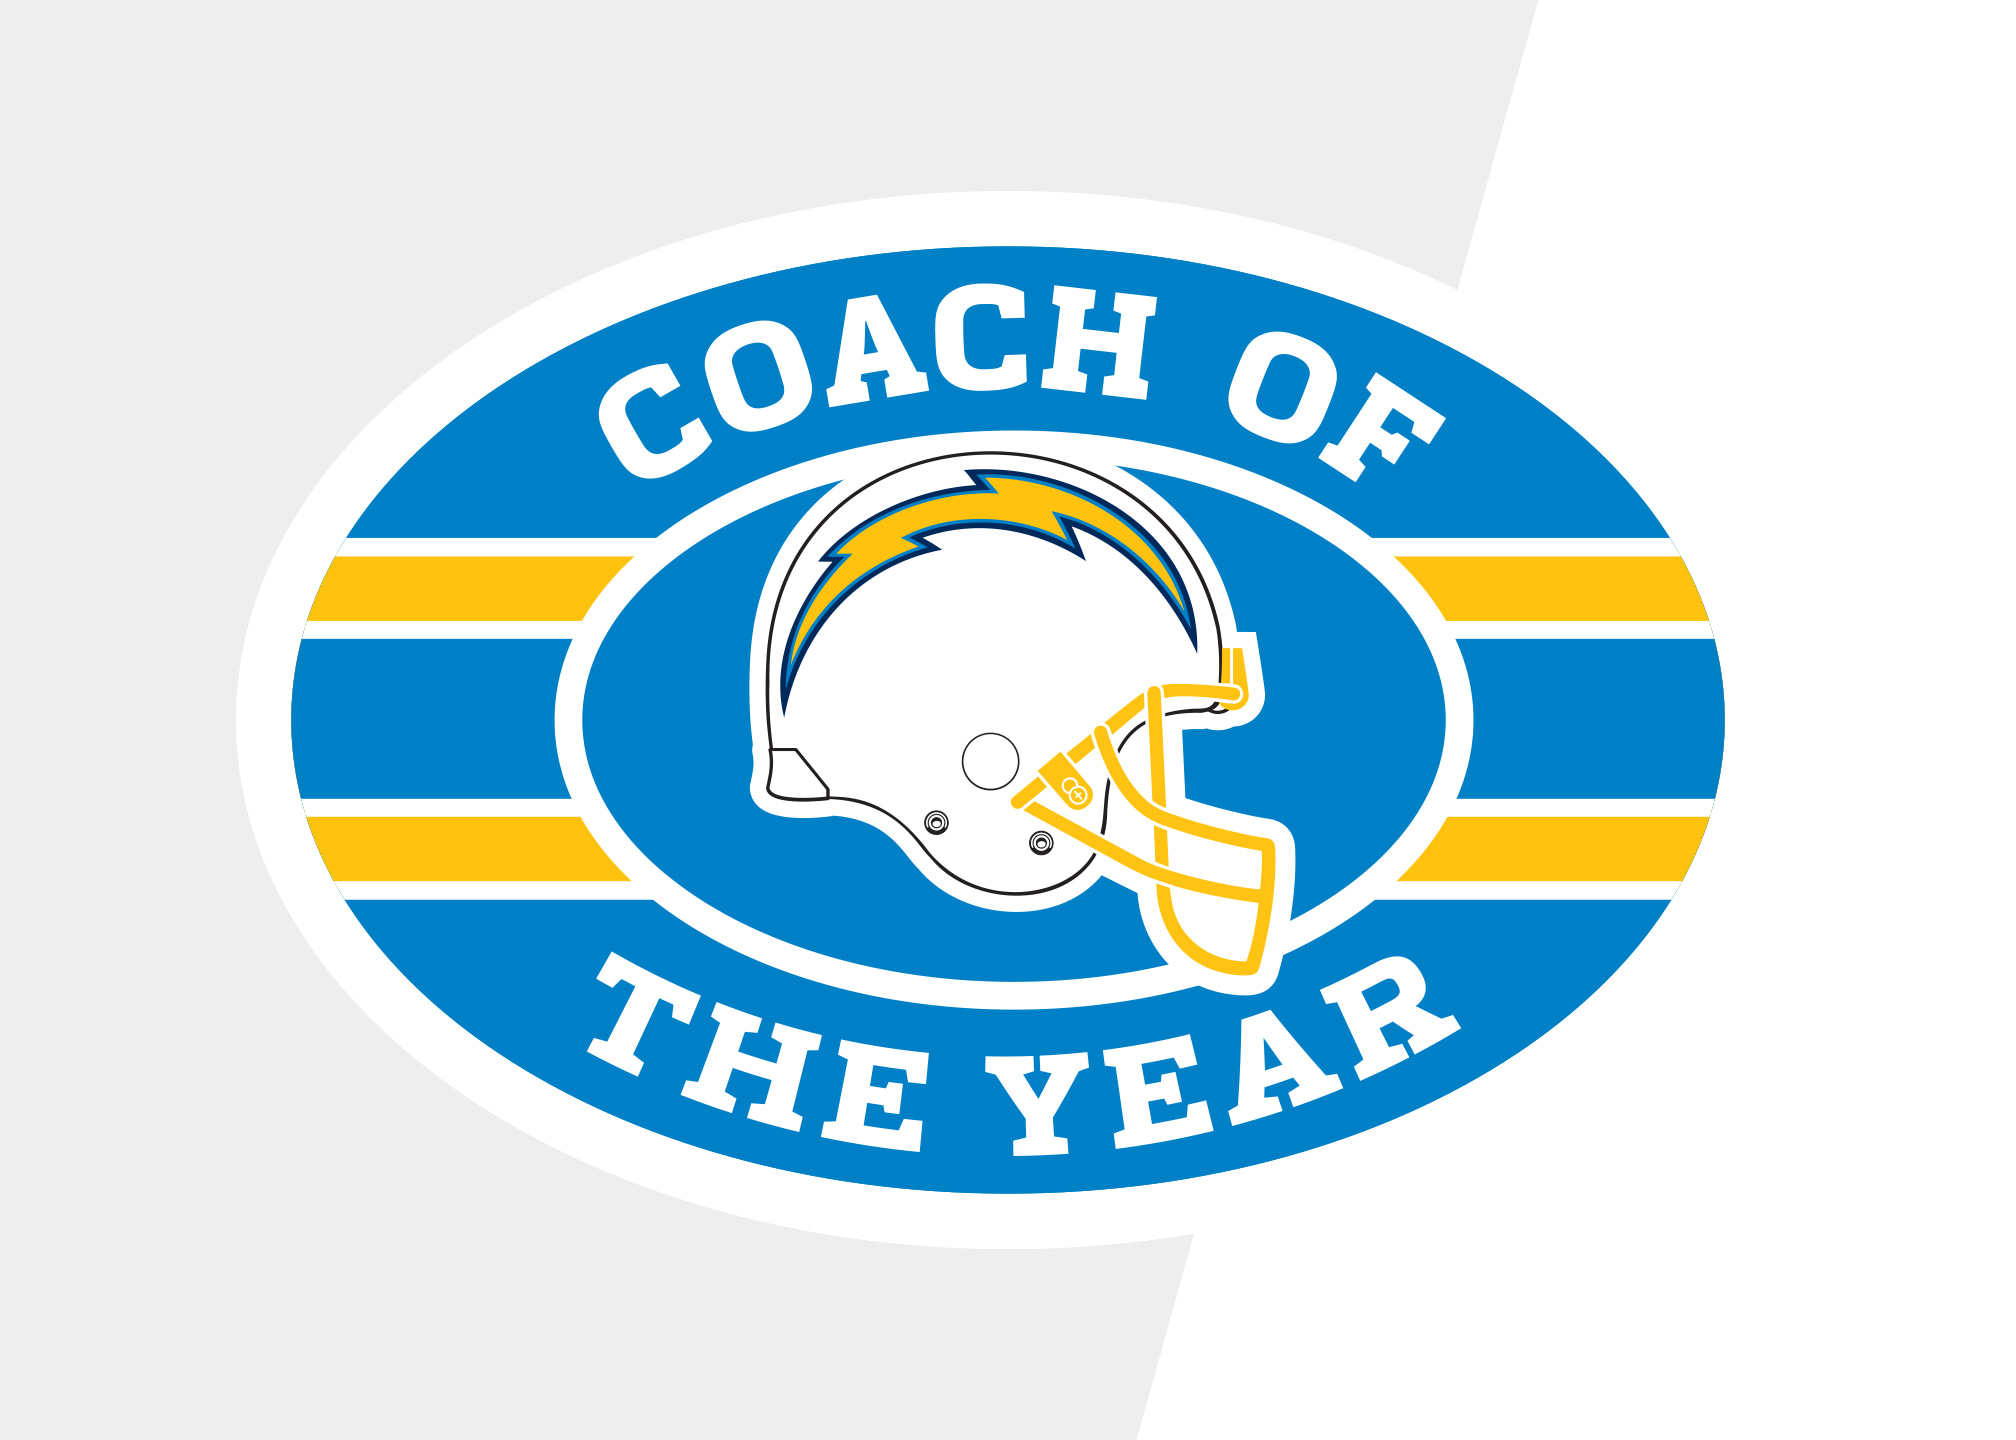 Los Angeles Chargers Coach of the Year